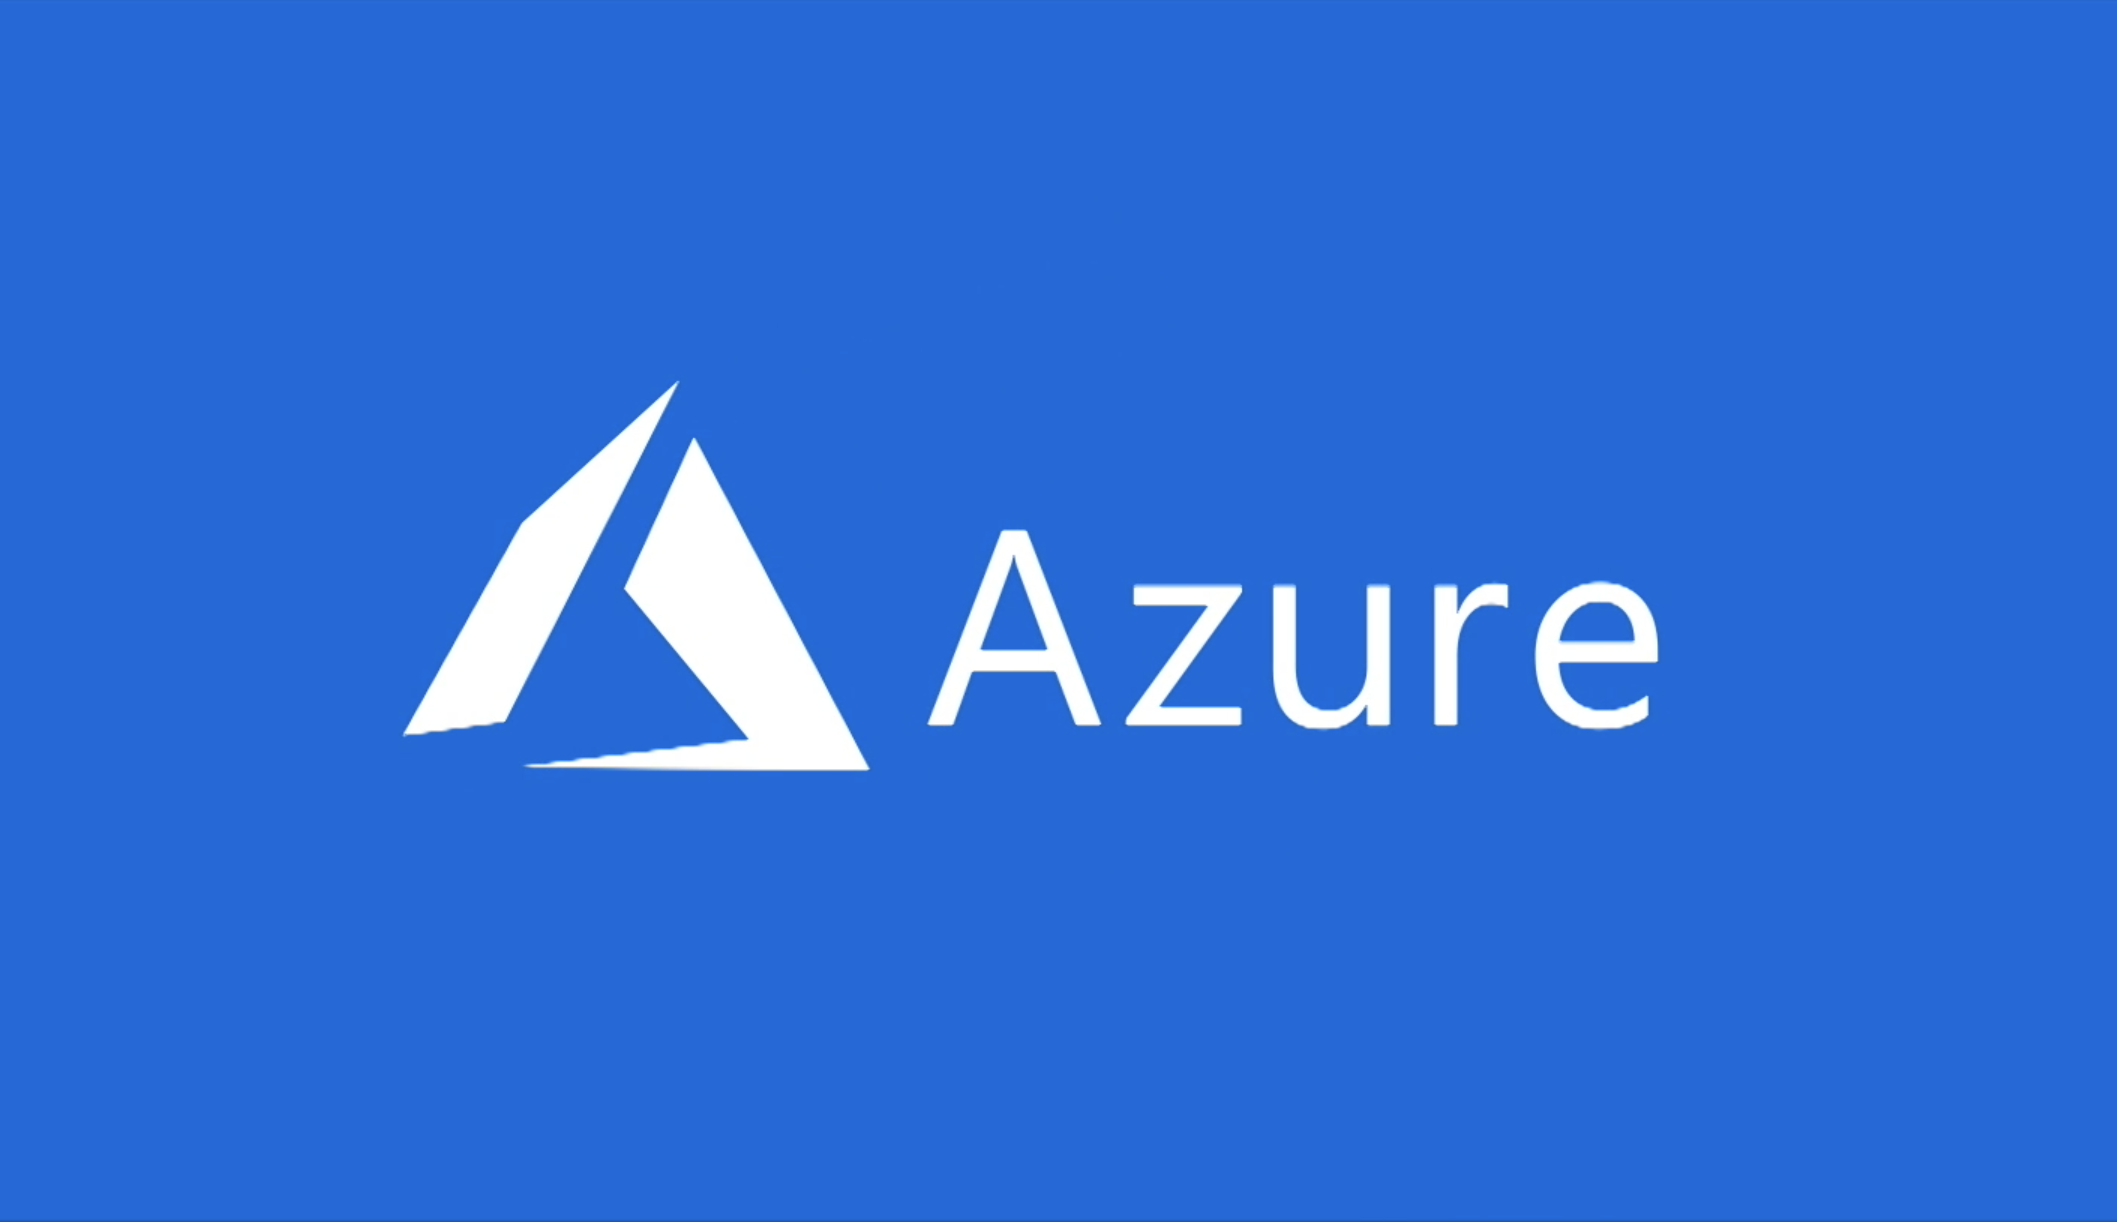 Microsoft announces Azure DevOps, will succeed Visual Studio Team